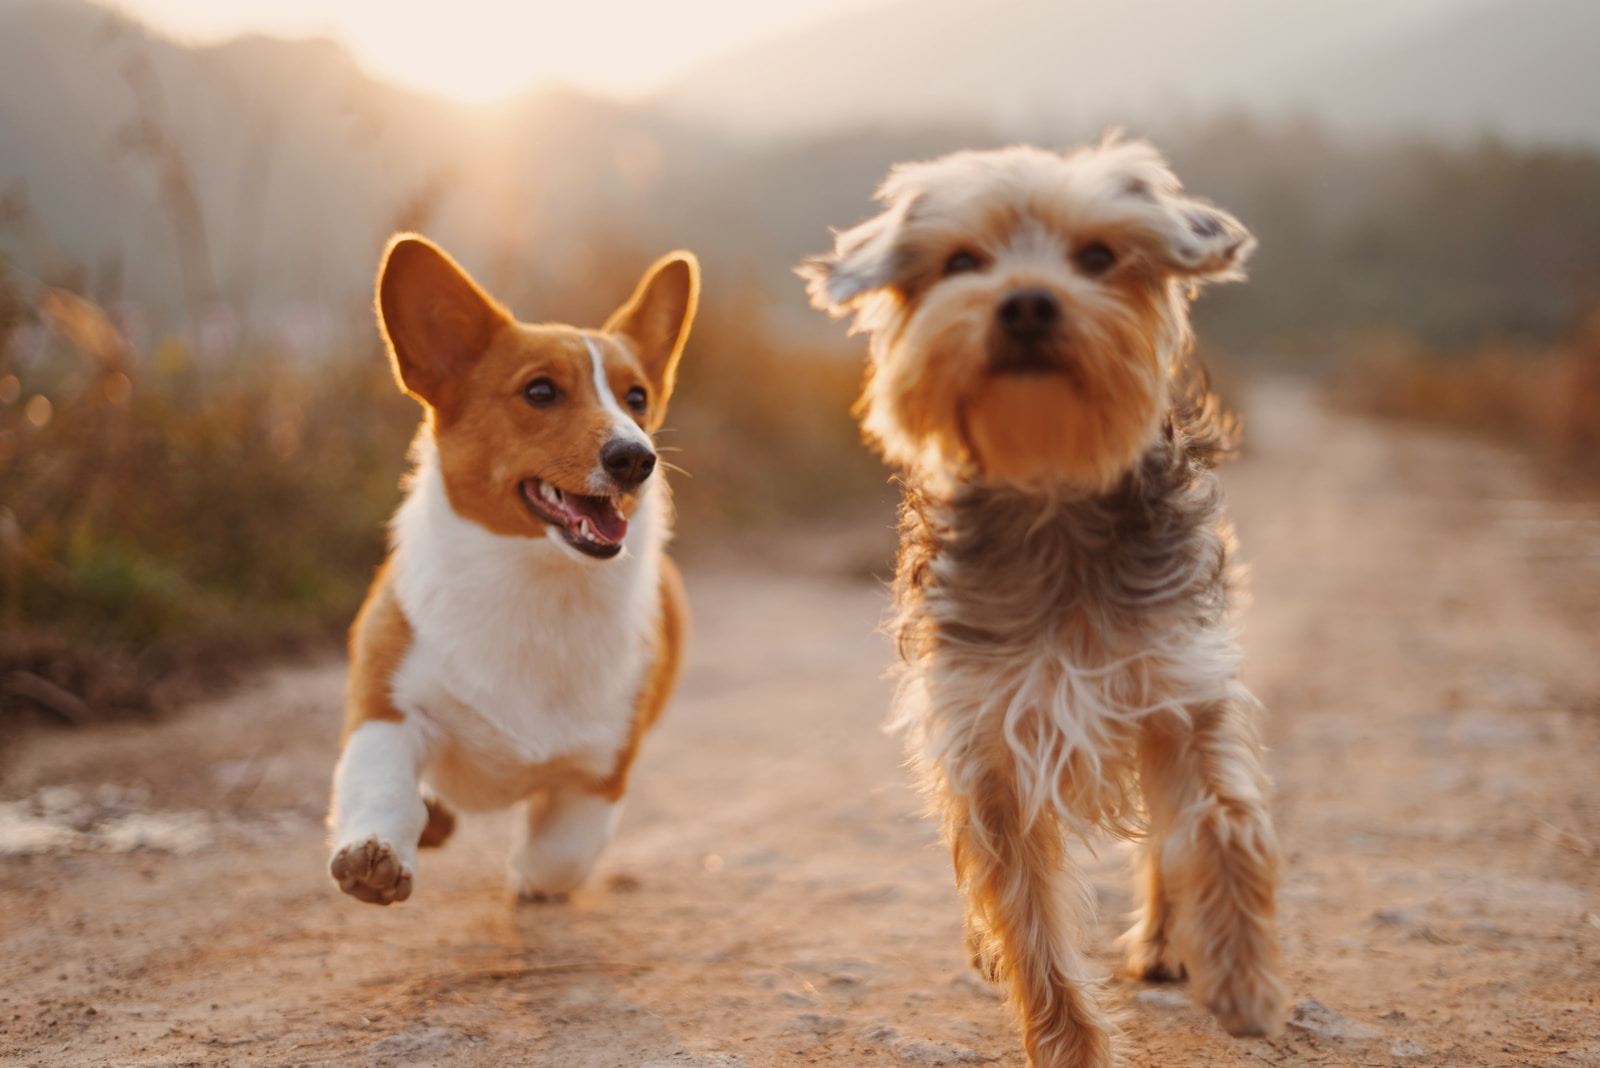 two brown and white dogs running dirt road during daytime